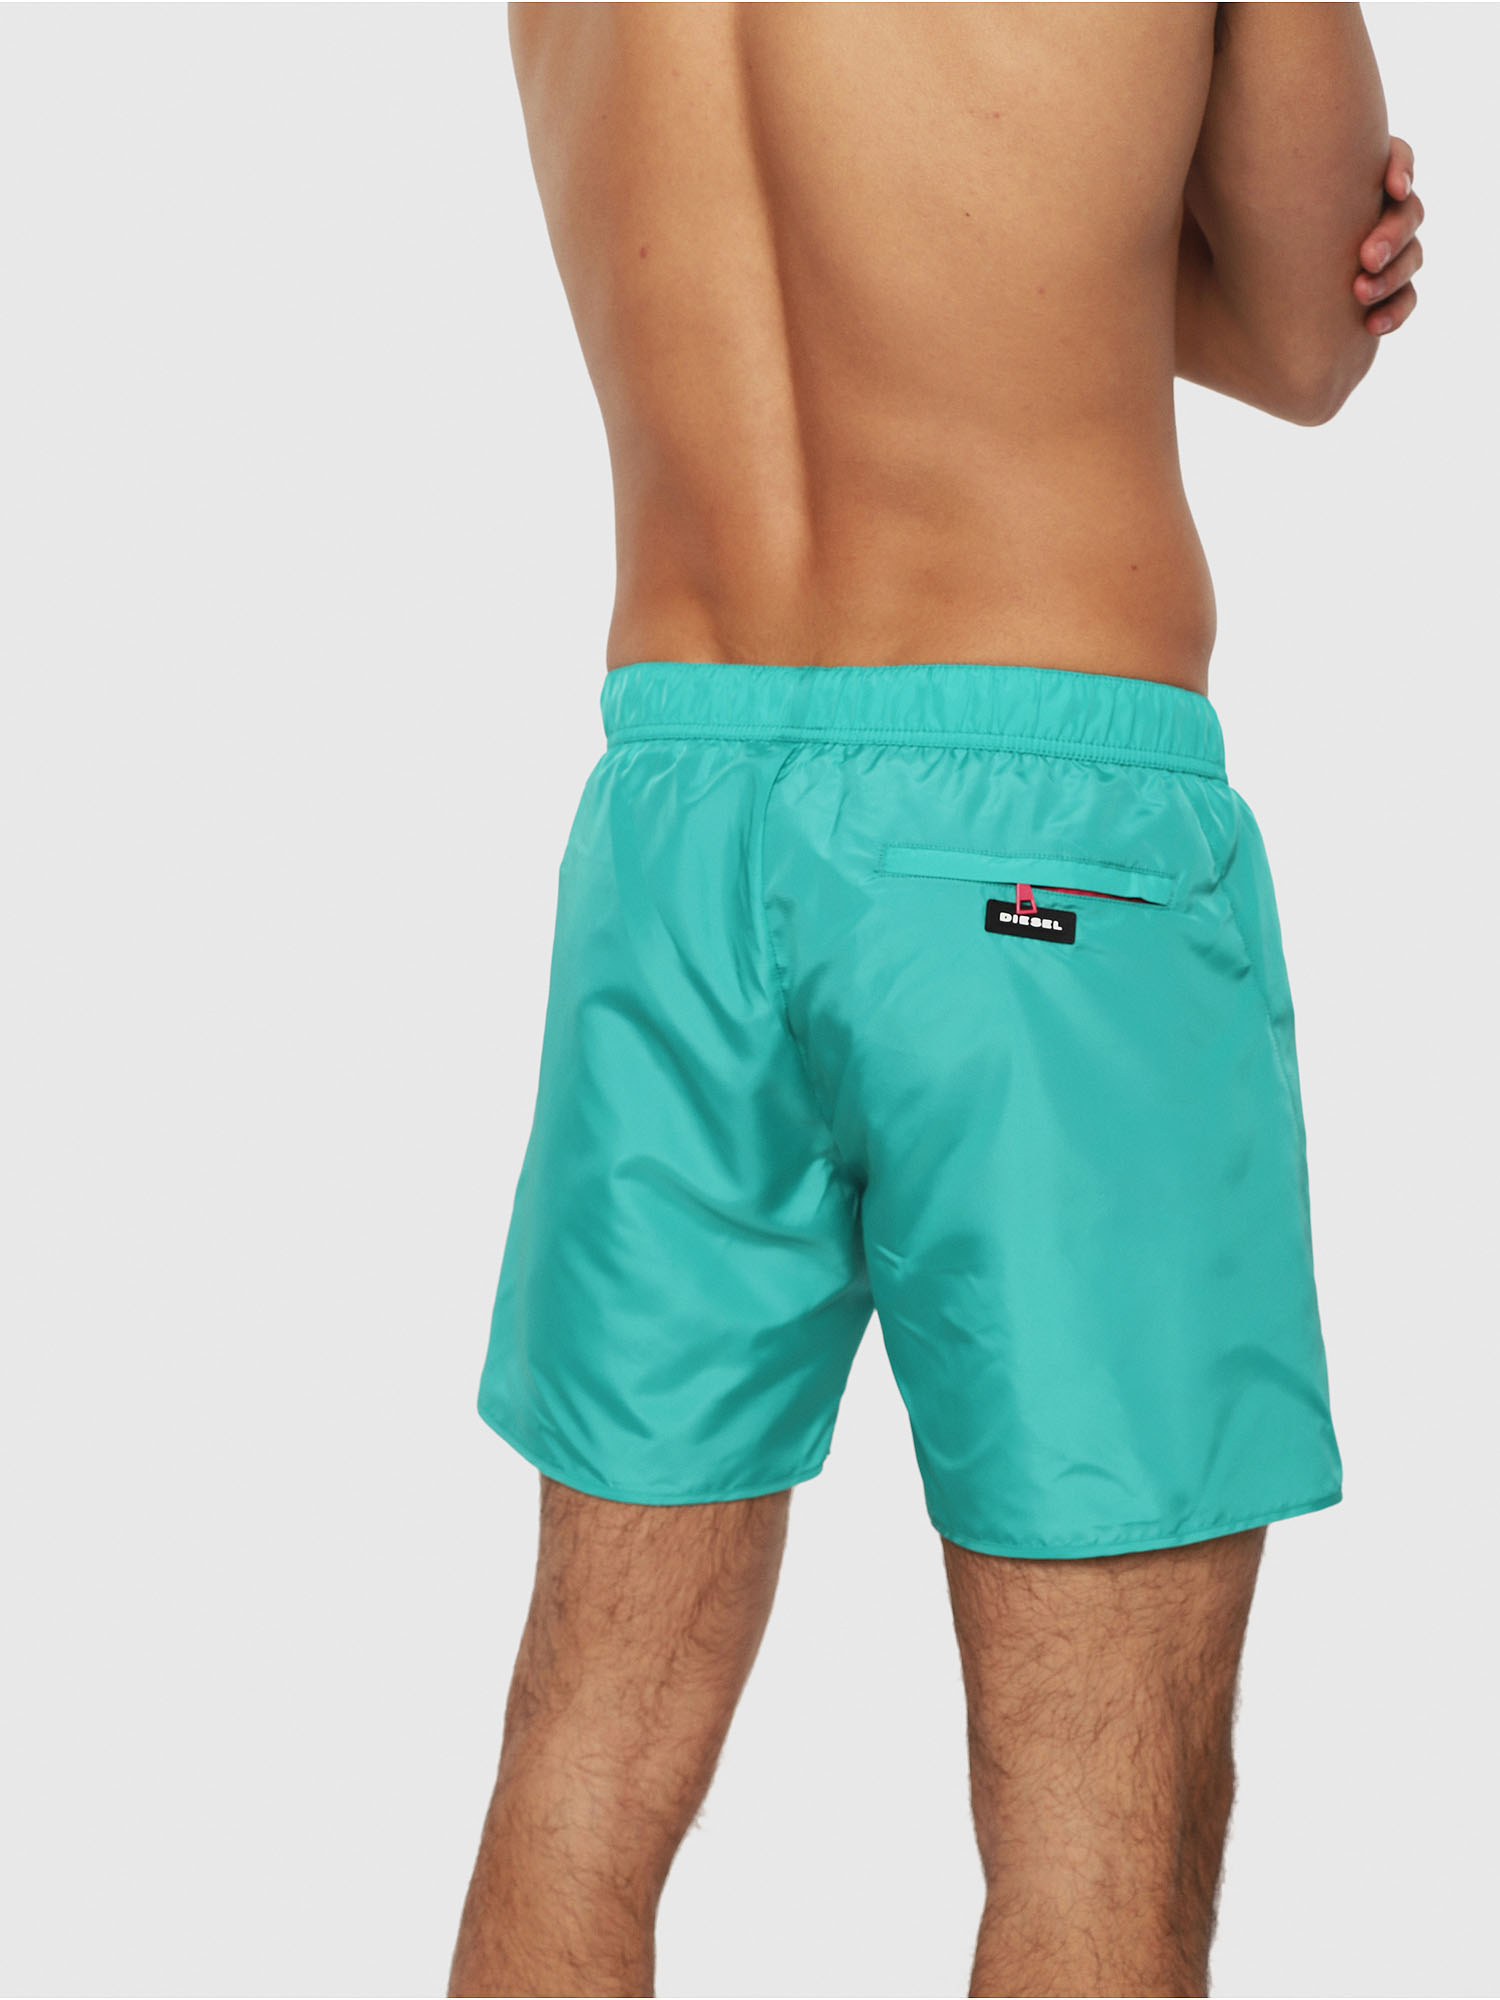 Diesel - BMBX-SEASPRINT,  - Swim shorts - Image 2